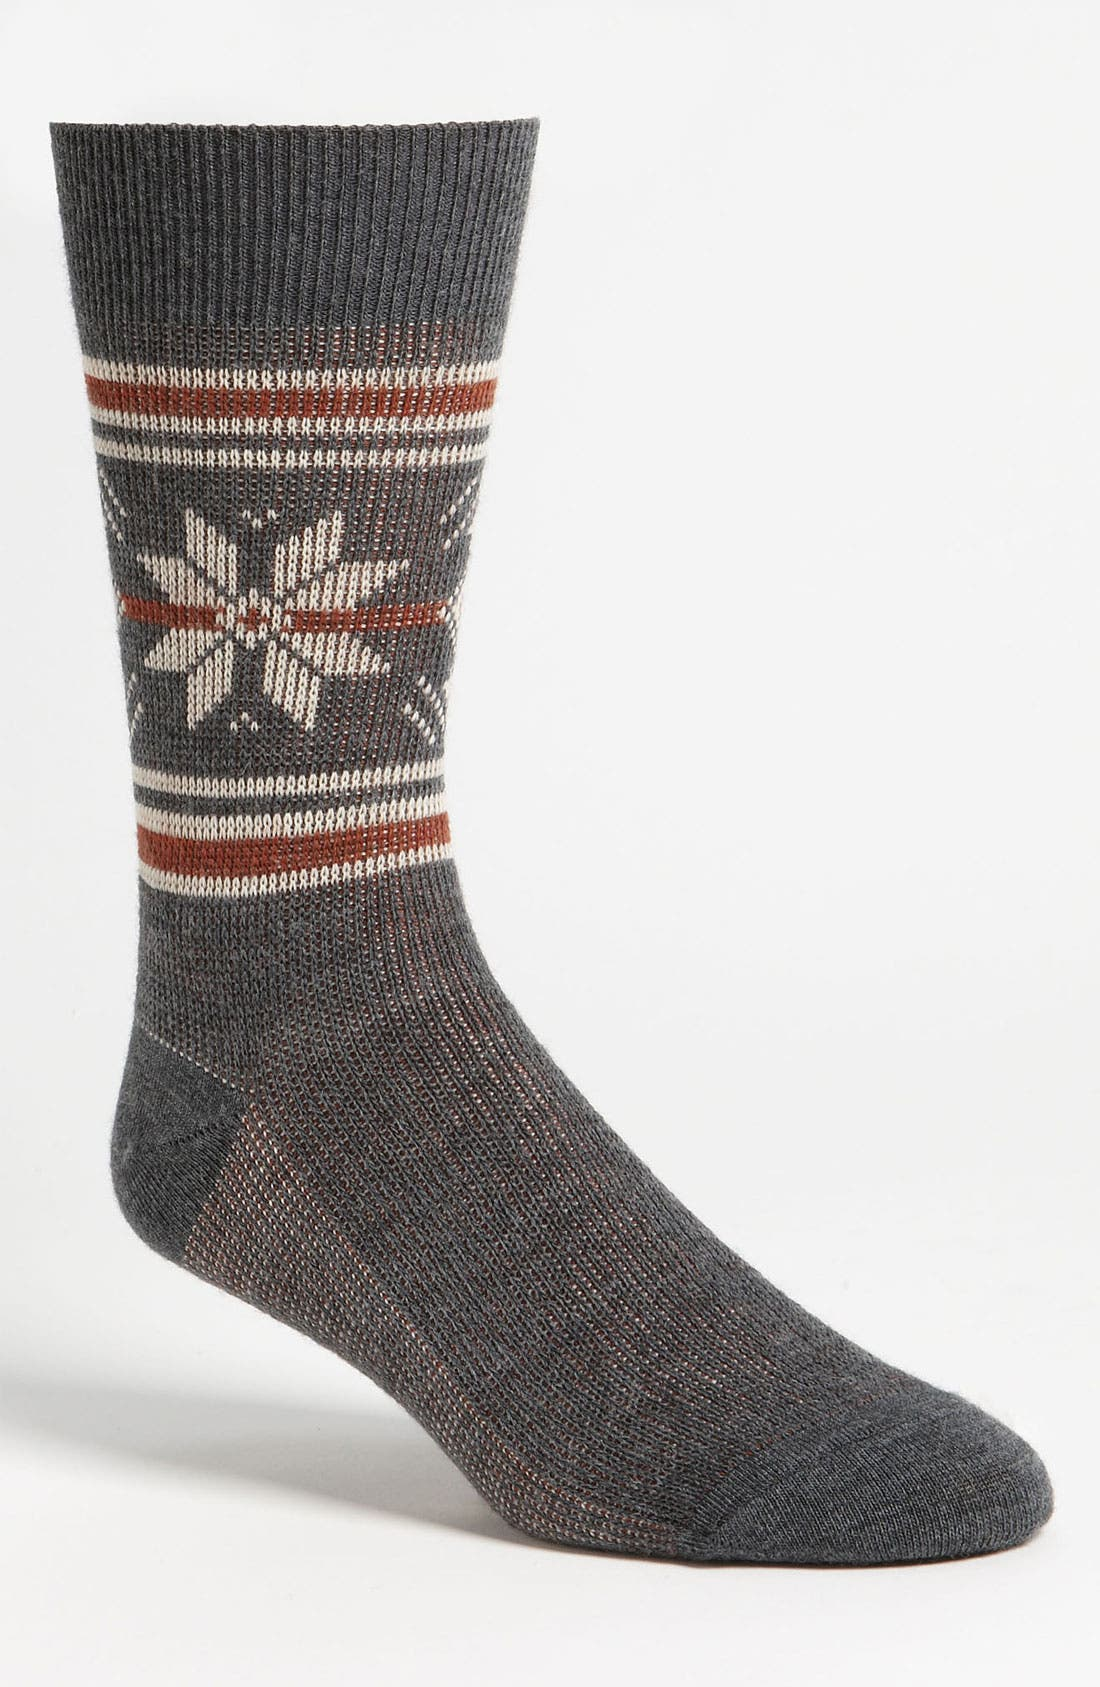 Alternate Image 1 Selected - Timberland Midweight Merino Wool Blend Crew Socks